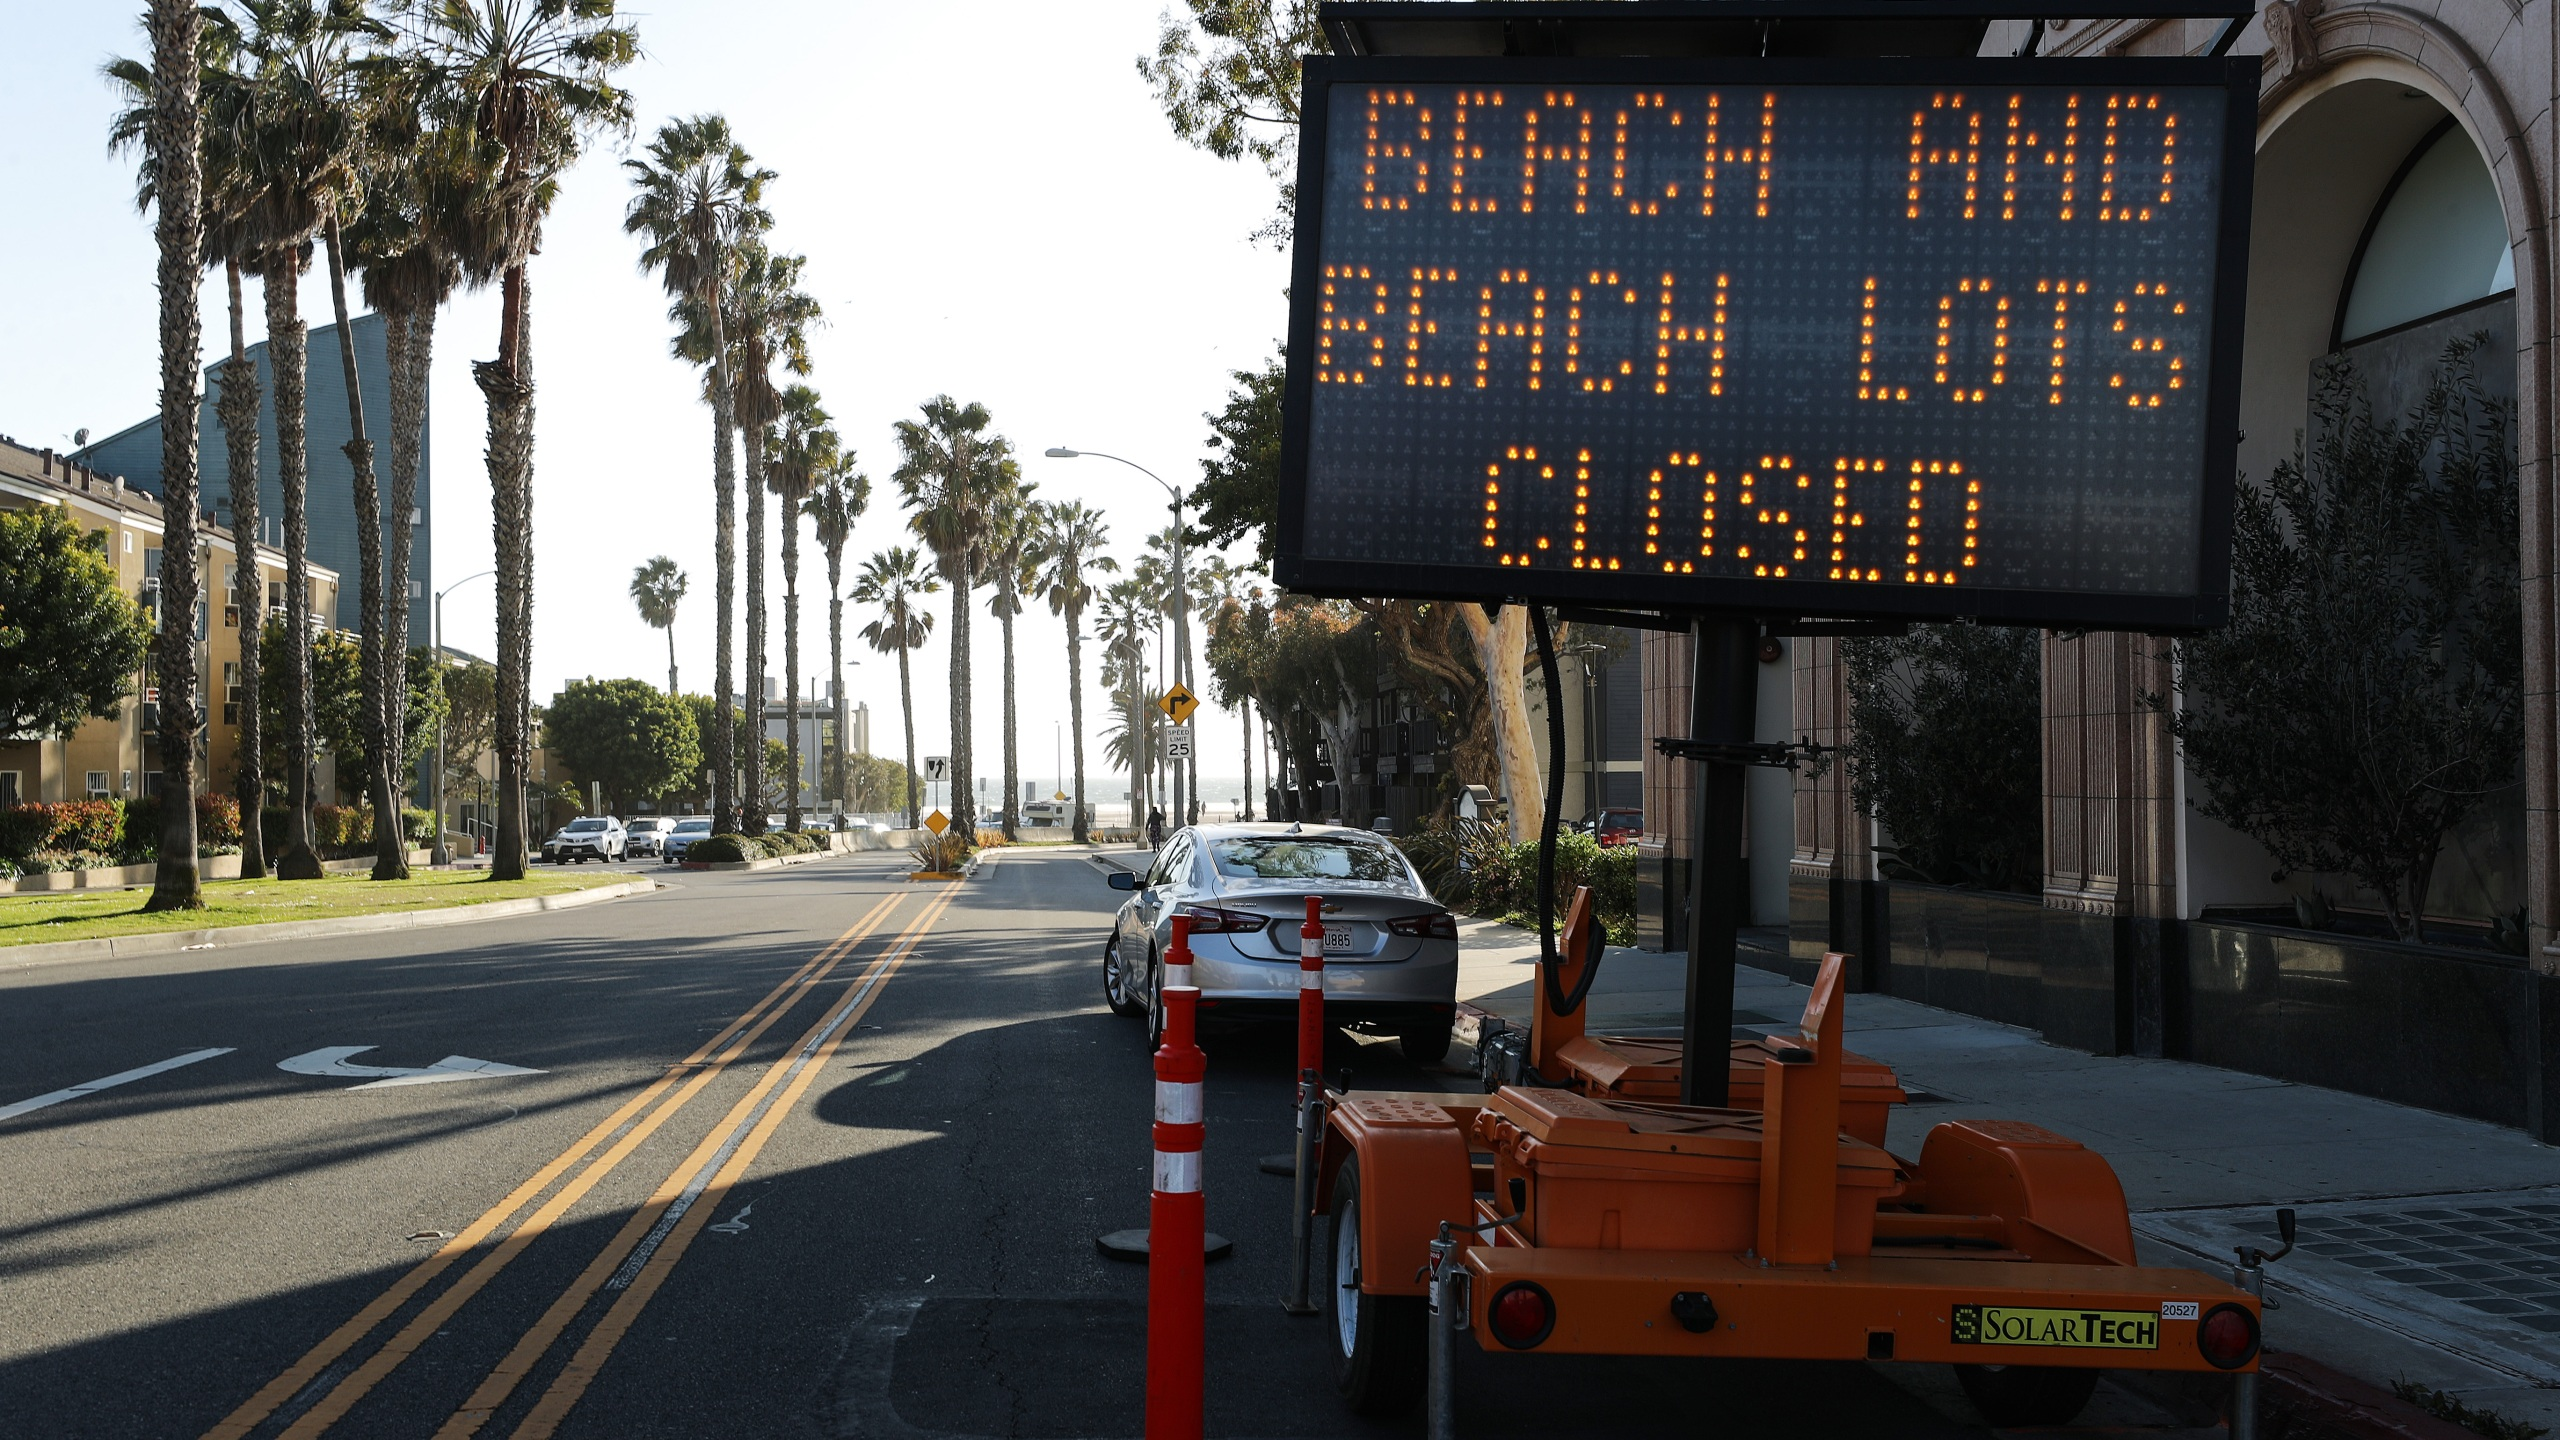 A road sign announces closures at Santa Monica beach amid the coronavirus pandemic on March 27, 2020 in Santa Monica. (Mario Tama/Getty Images)